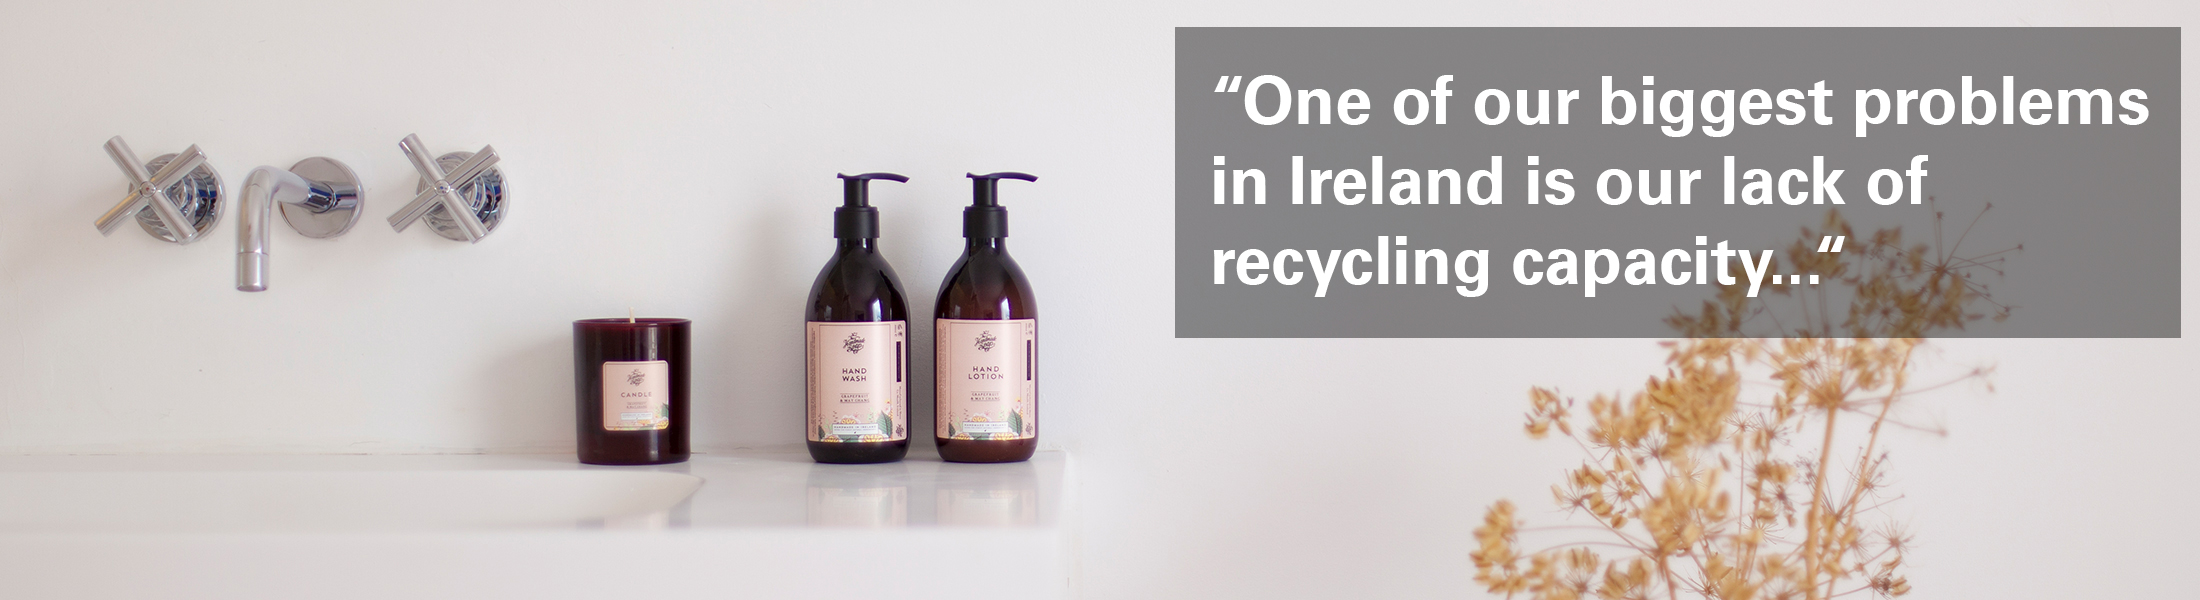 """Photo of The Handmade Soap Company's products in a bathroom with the text """"One of our biggest problems in Ireland is our lack of recycling capacity"""" overlaid."""